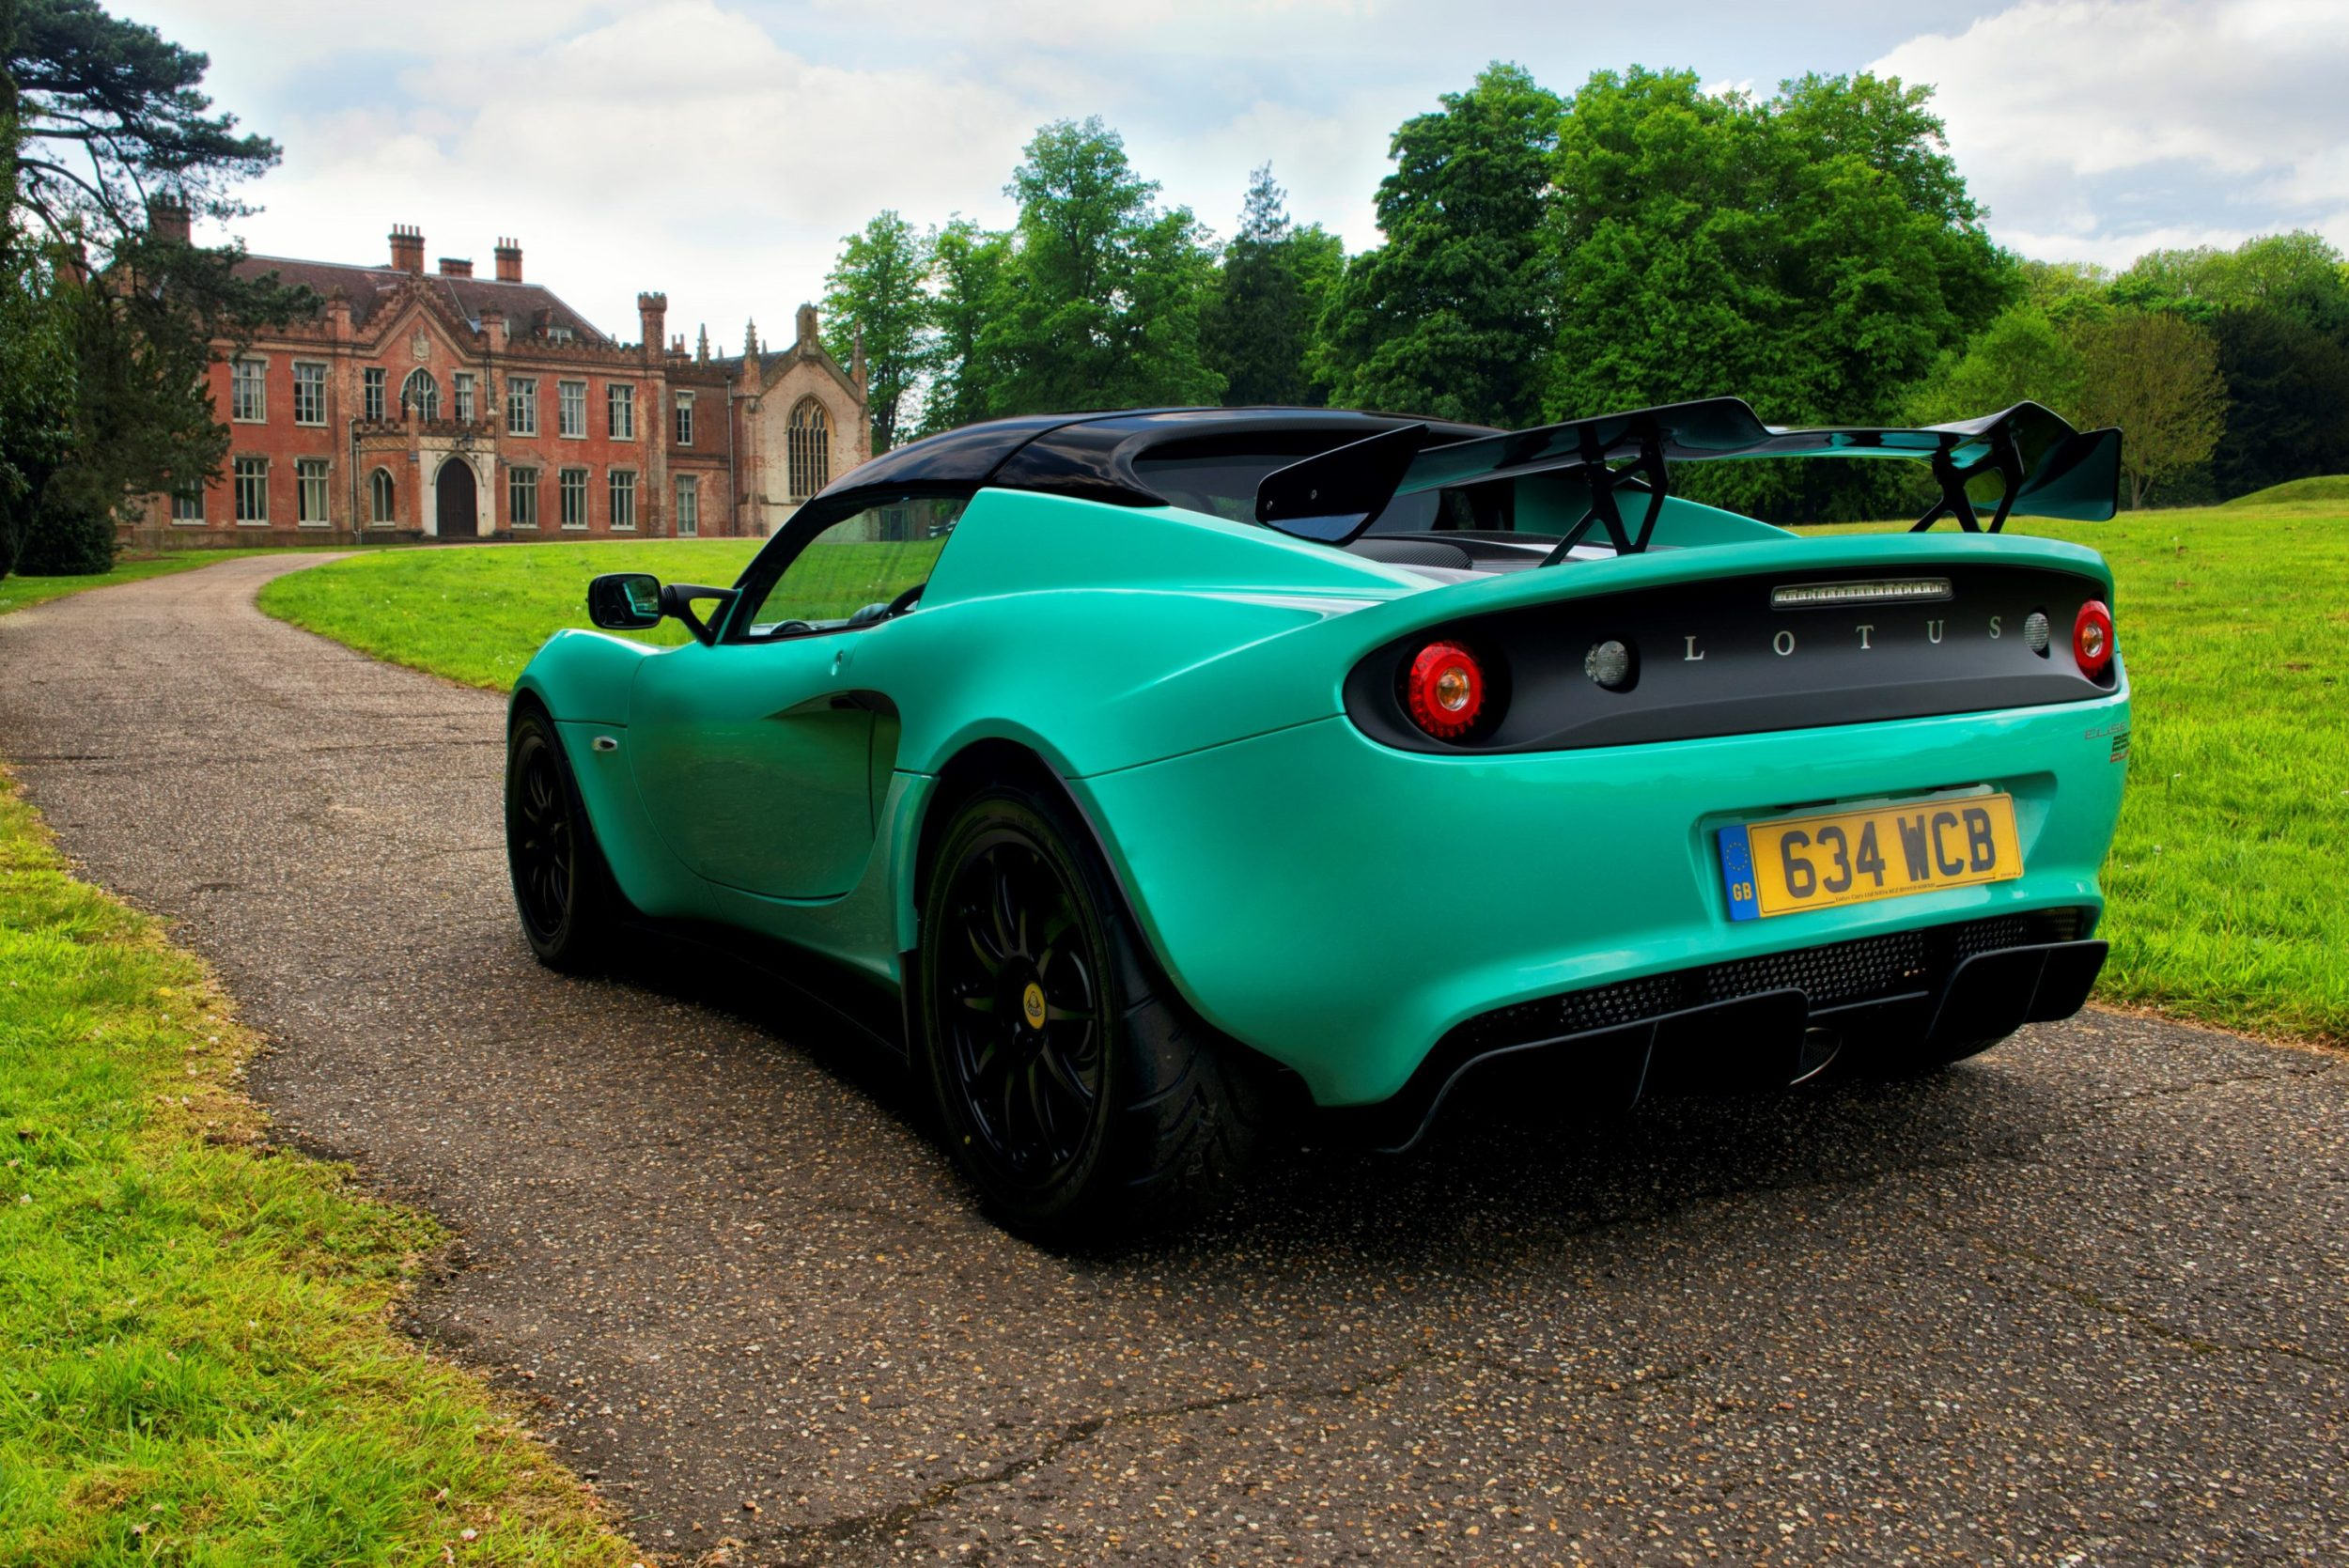 http://trackworthy.com/wp-content/uploads/2017/06/Lotus-Elise-Cup-250-3-e1496420885334.jpg